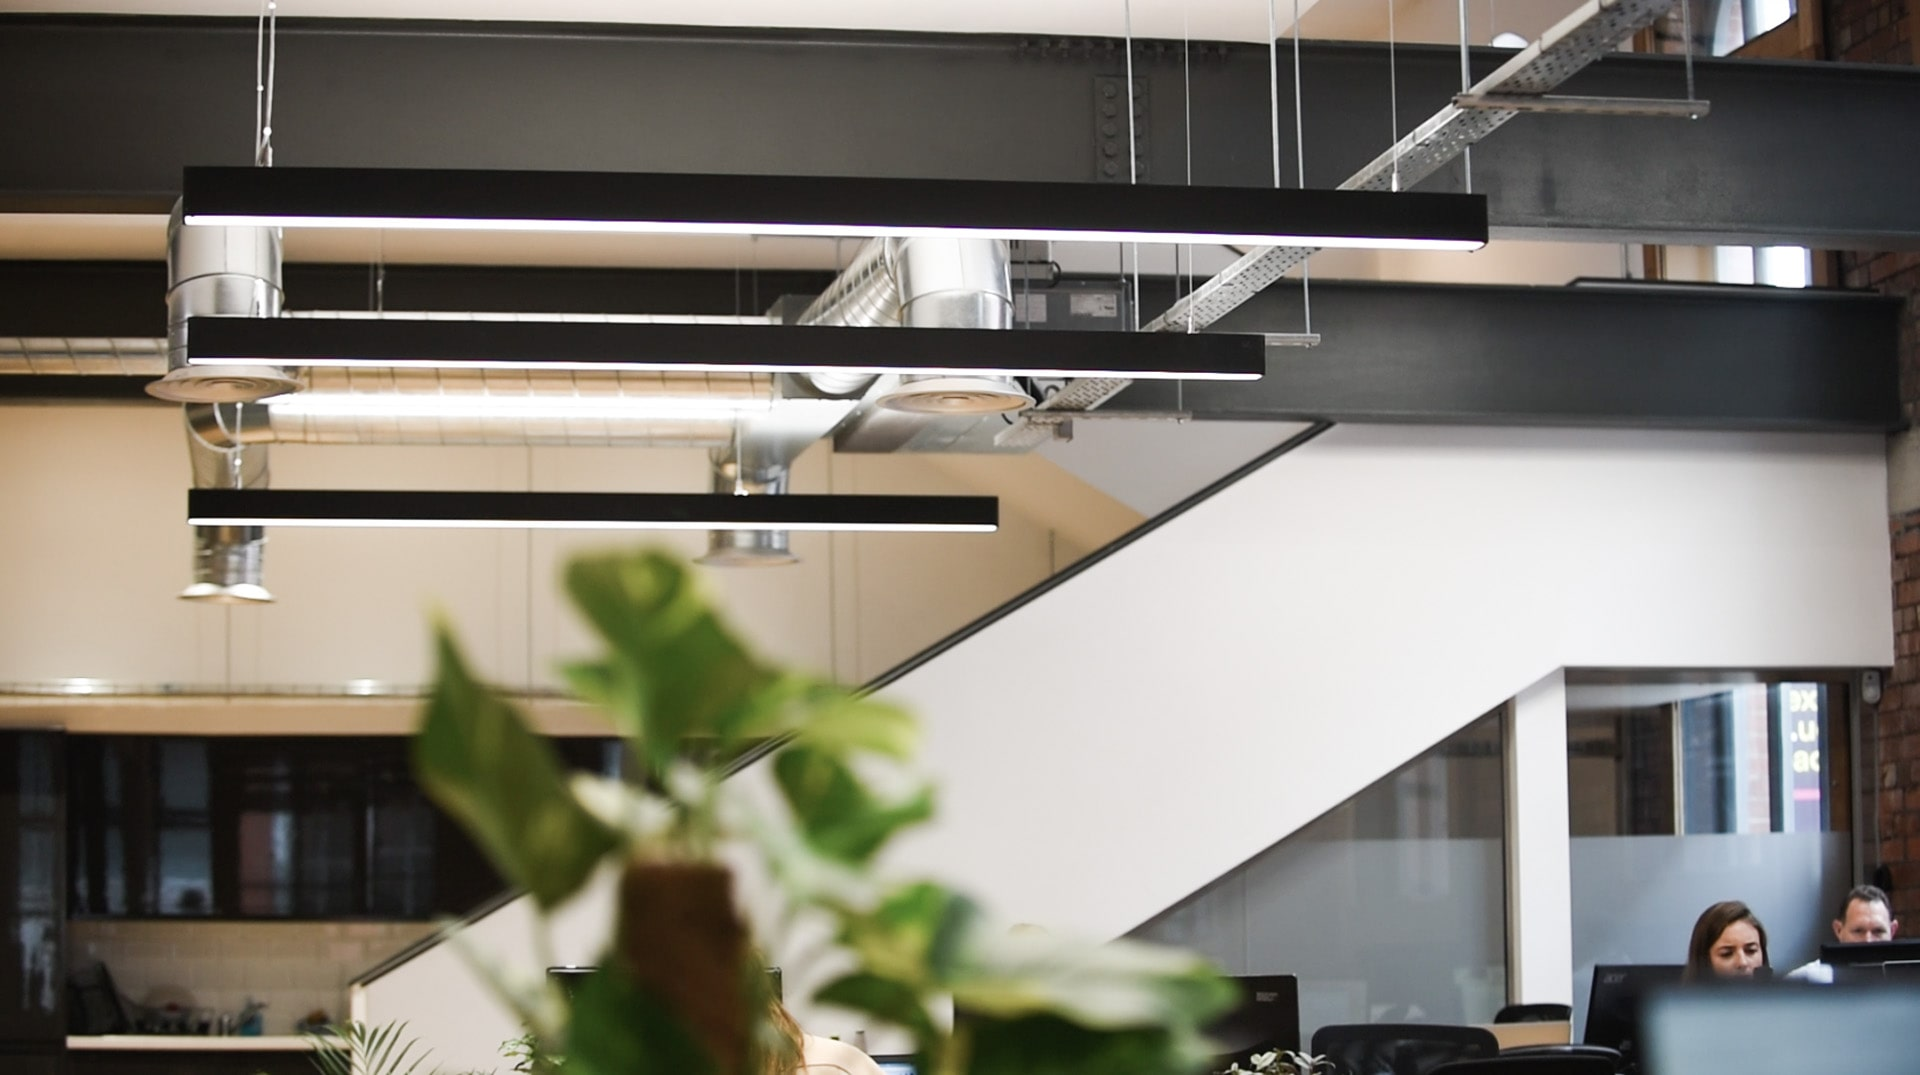 OFFICE LIGHTING FOR INDUSTRIAL STYLE CAT B FITOUT. - 1 CROSS YORK STREET, LEEDS.